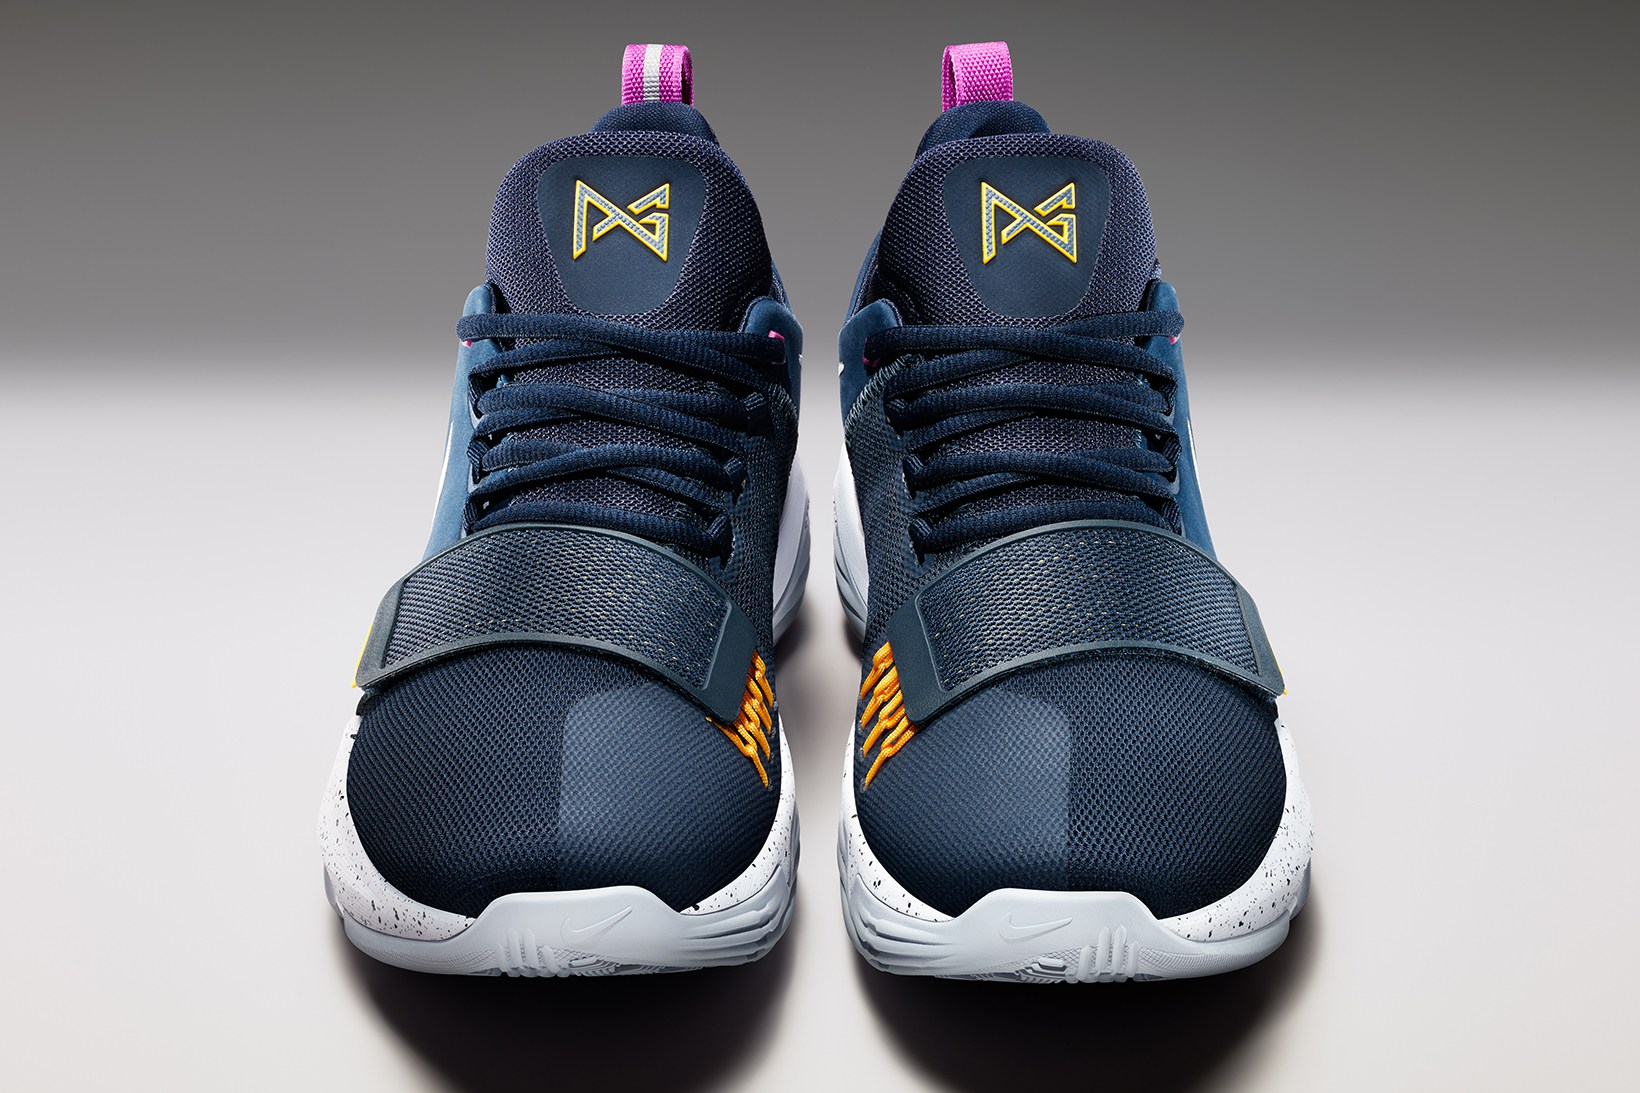 official-images-nike-pg1-4-2